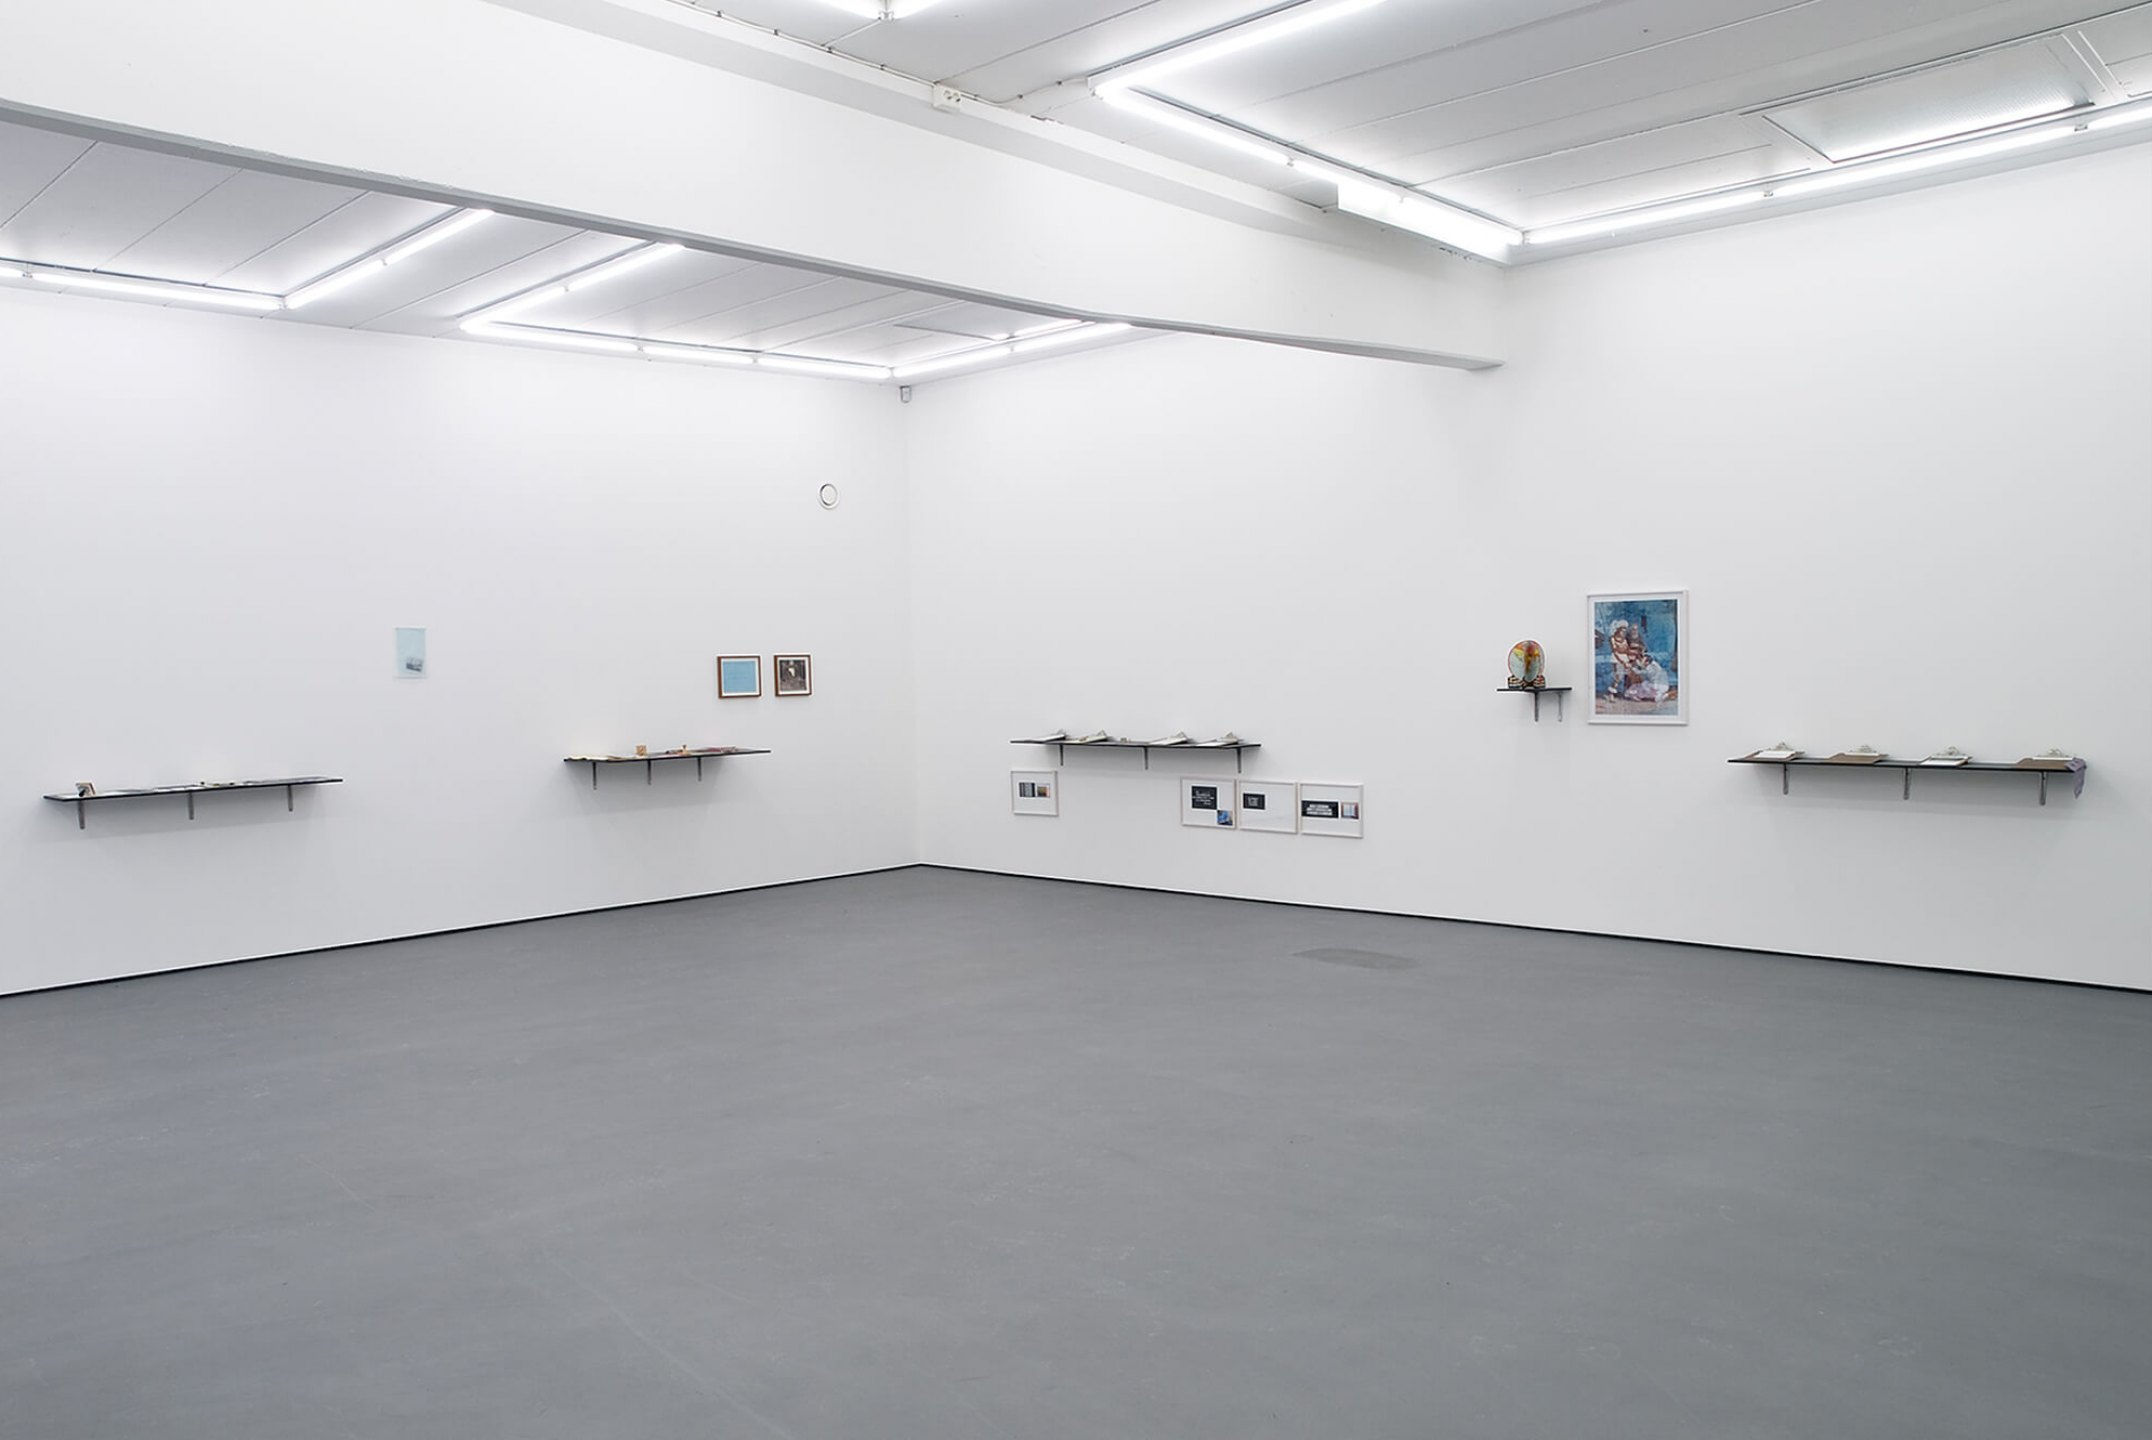 Runo Lagomarsino,<em>Las Casas is Not a Home,</em>2008/2010,Installation withobjects, sculpture, video, drawings prints and shelves, variable dimensions - Mendes Wood DM